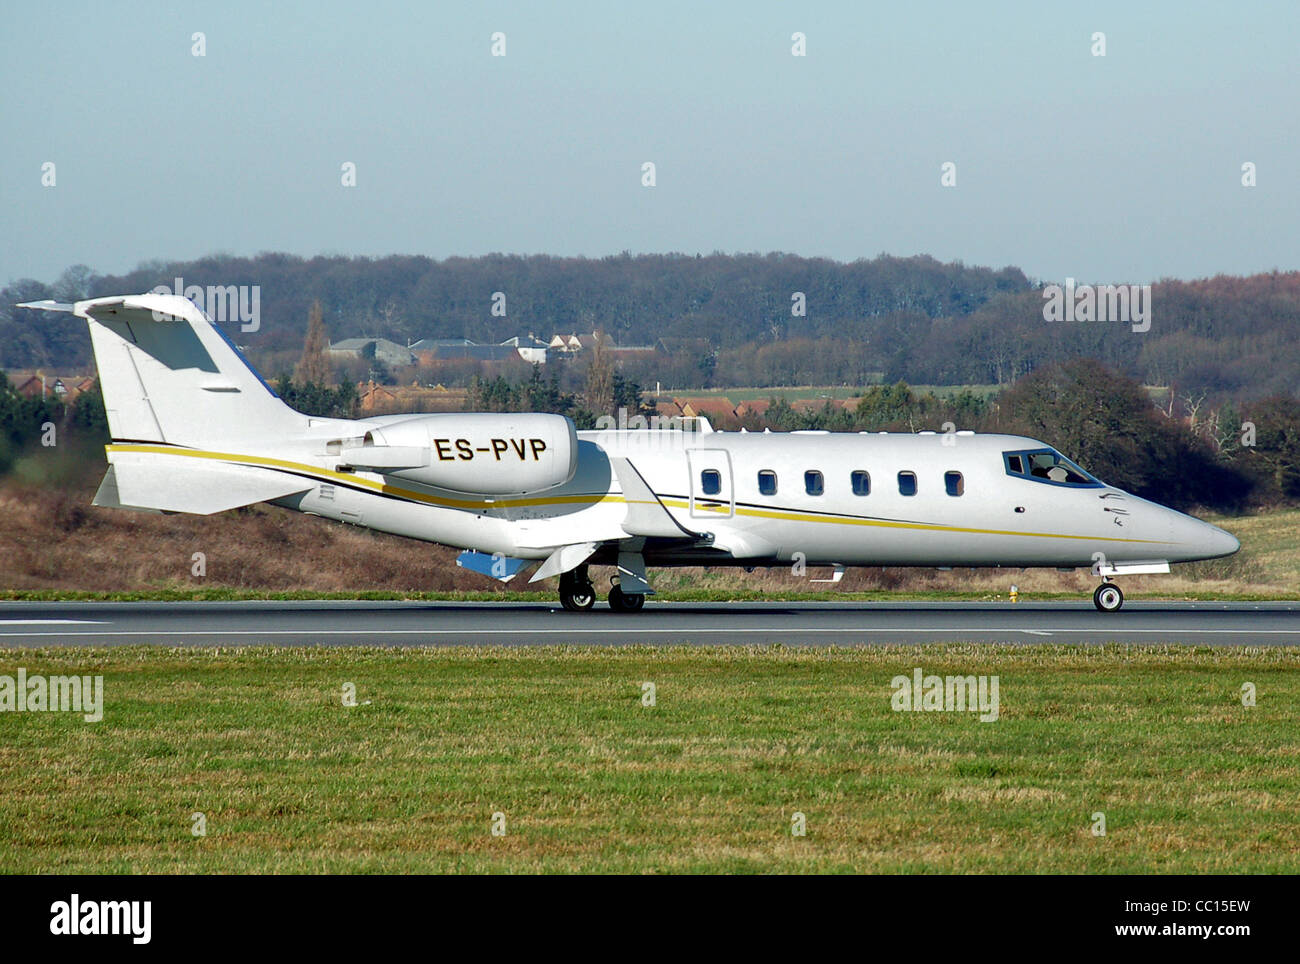 Bombardier Learjet 60 (Estonia registration ES-PVP) lands at London Luton Airport, England - Stock Image